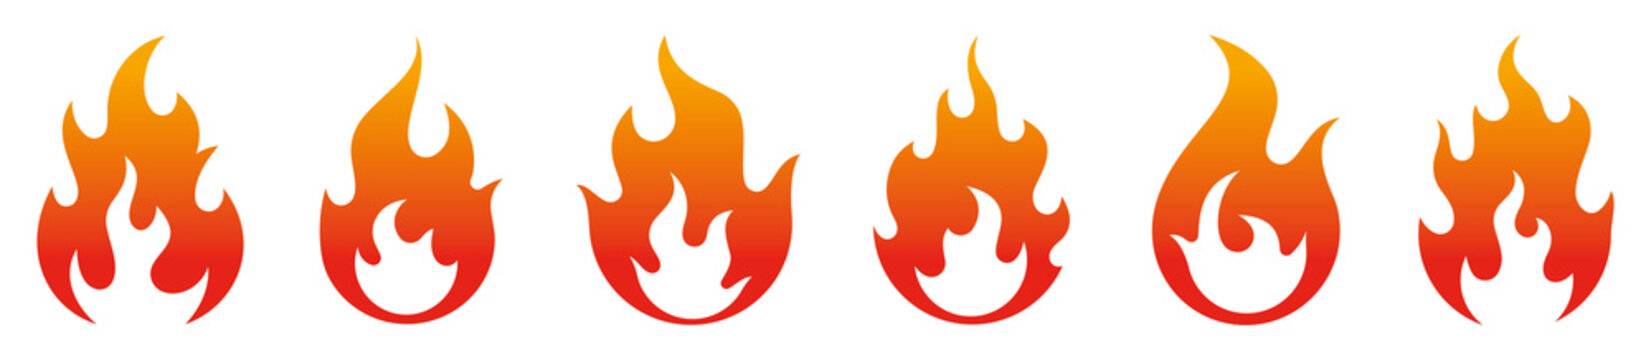 Fire flames icons collection. Vector